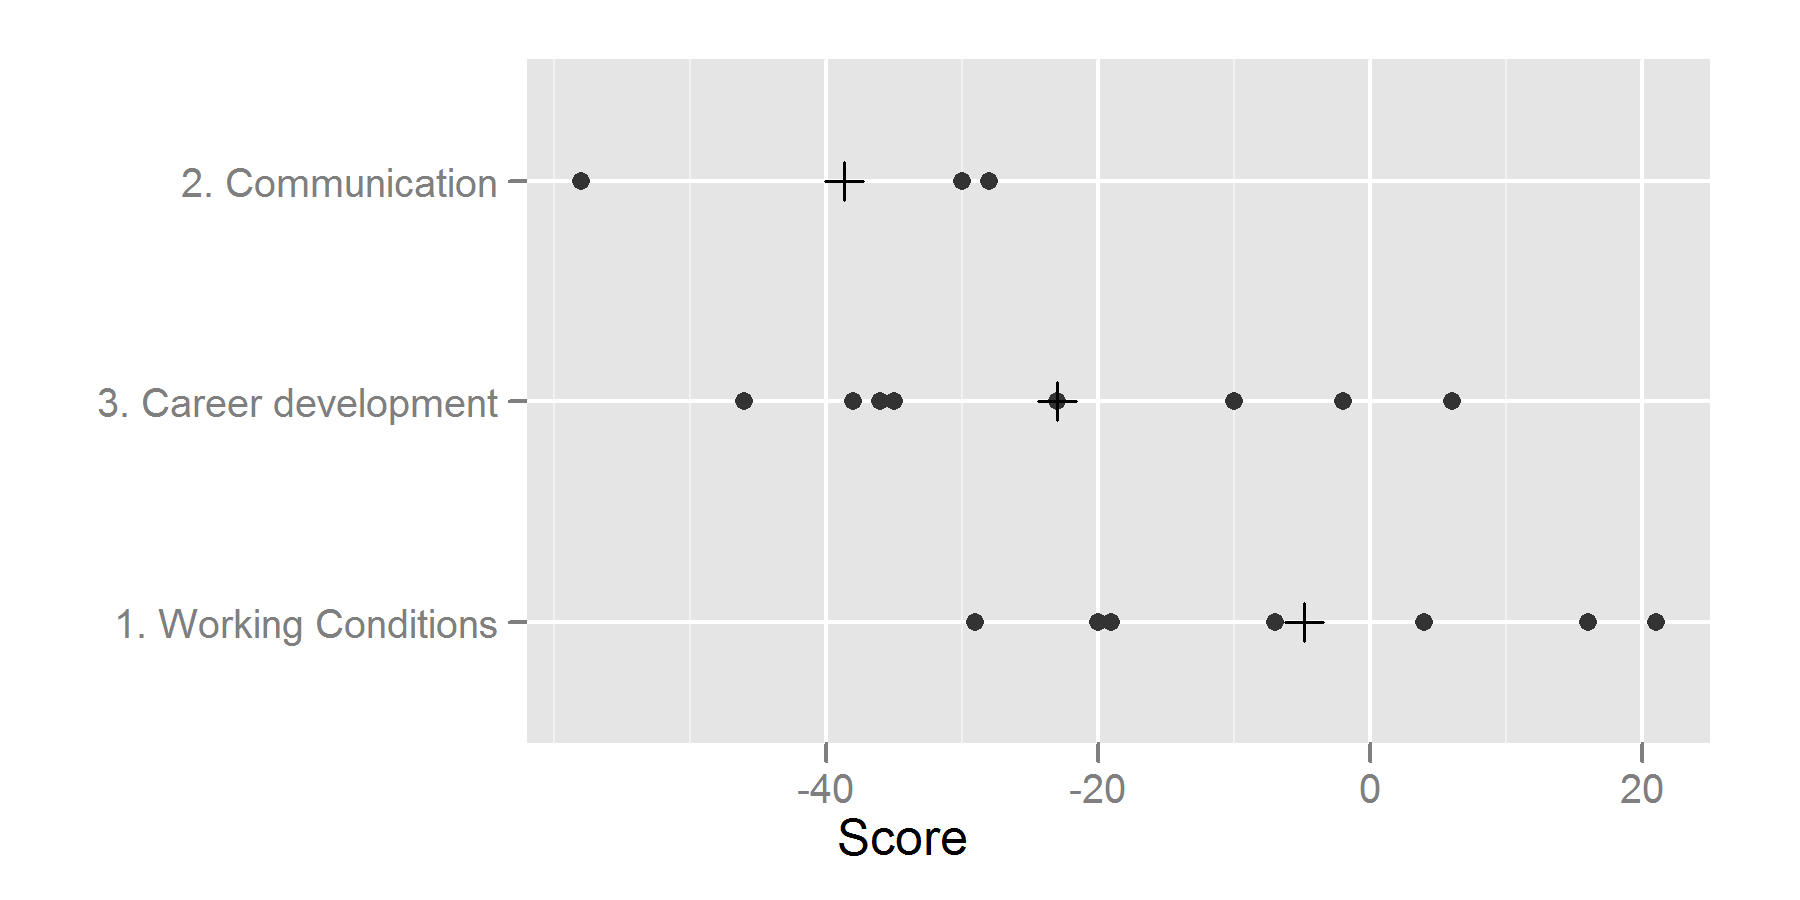 dot plot of scores by section, linear score